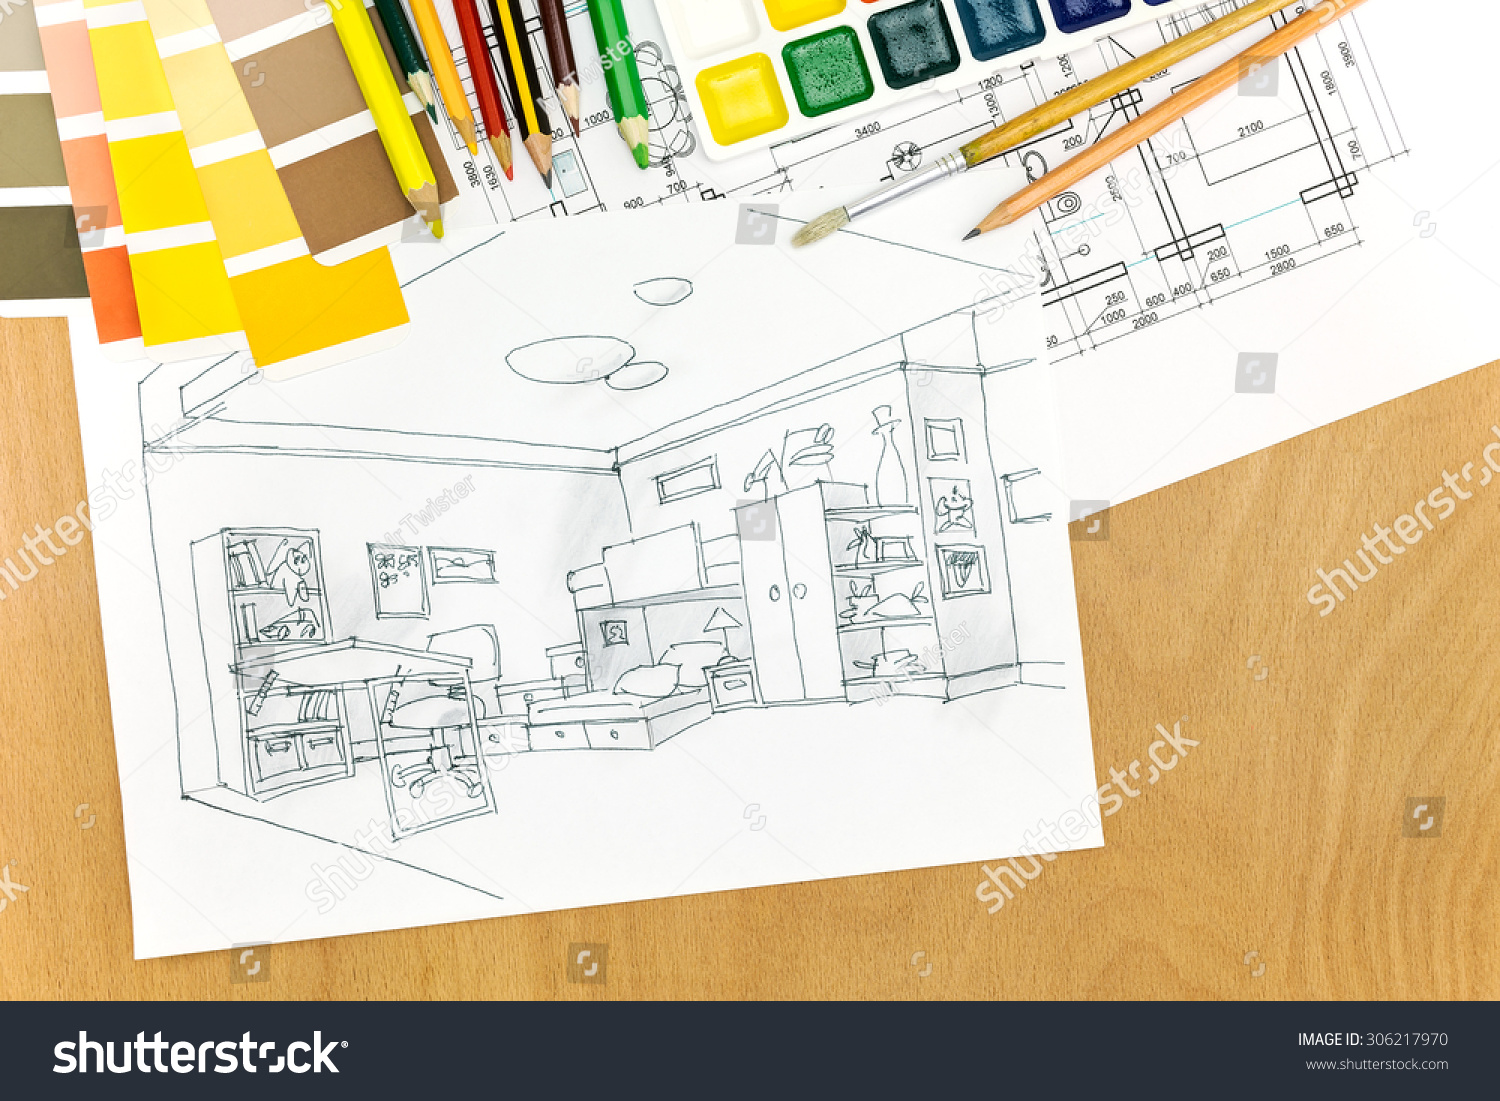 Royalty Free Architectural Plans Of Room Interior On 306217970 Desk Schematic A With Painting Tools